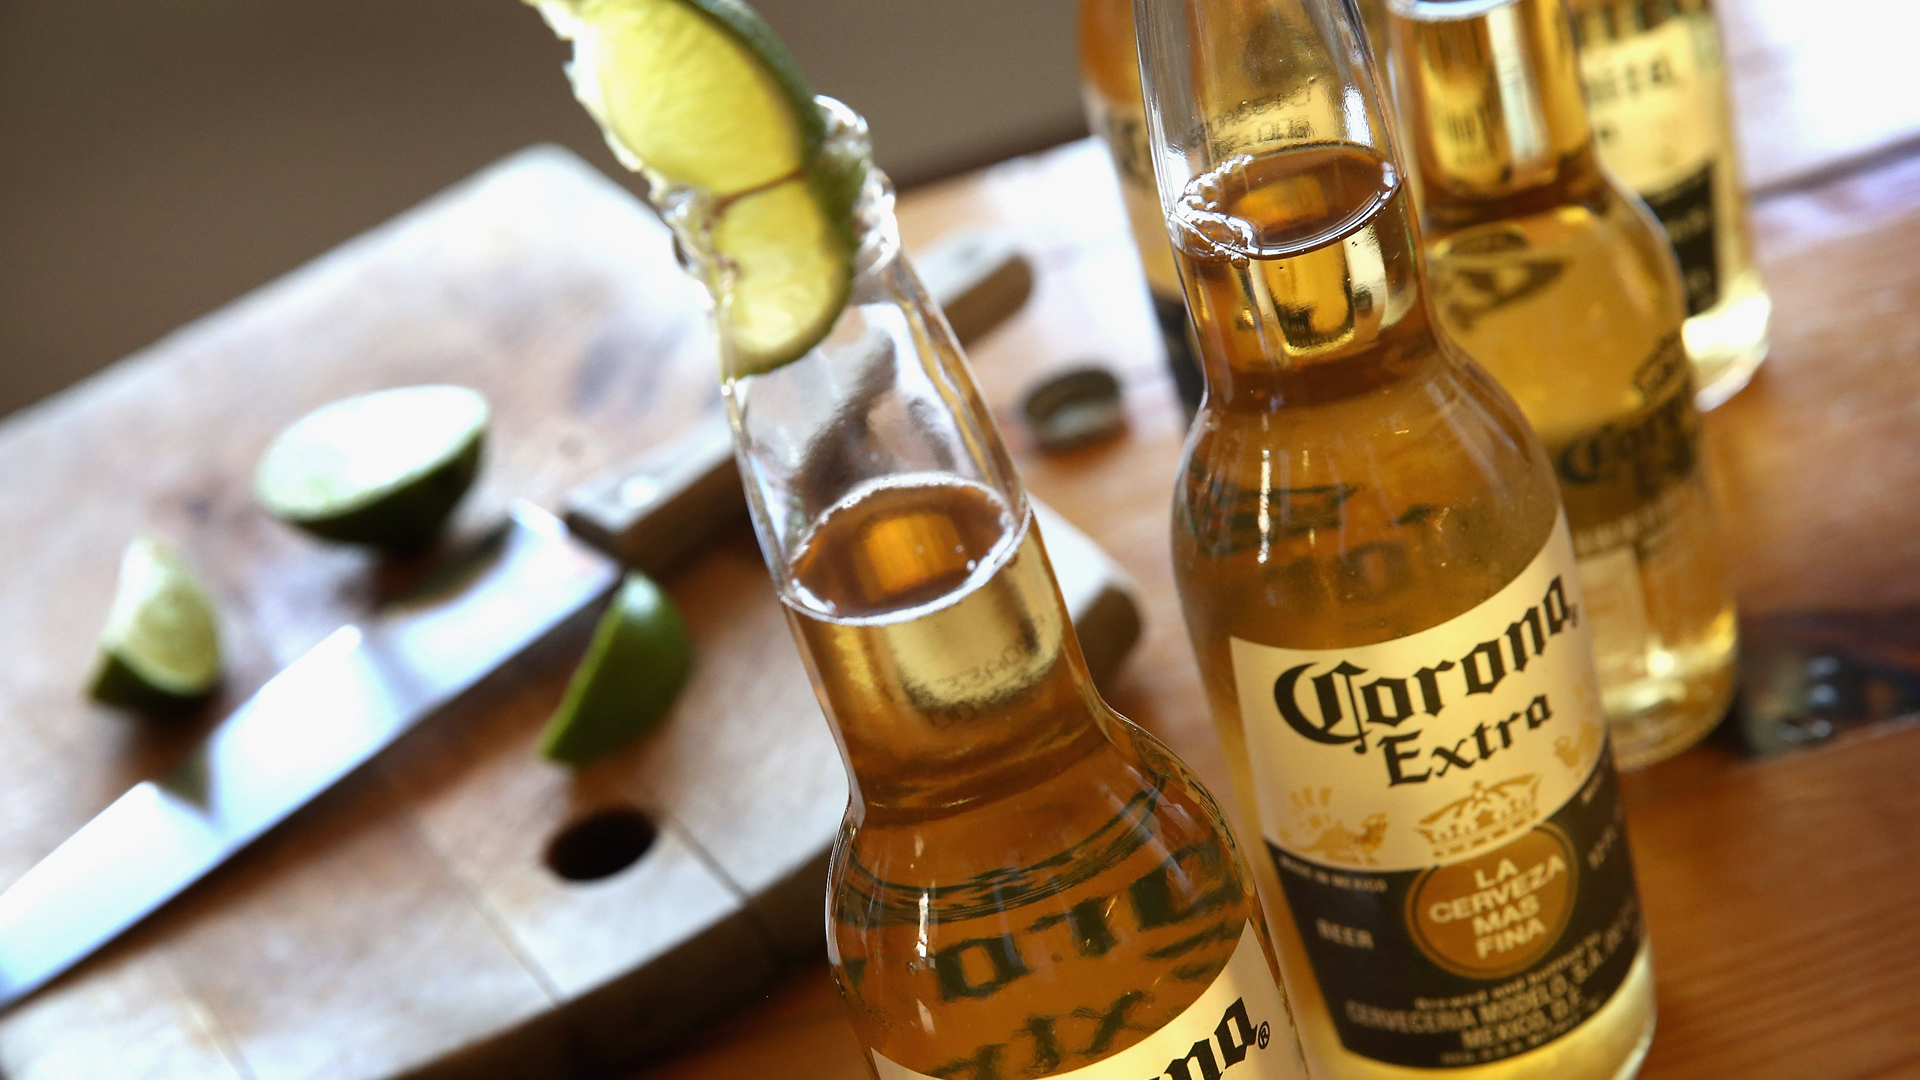 Corona beer is seen in a file photo. (Credit: Scott Olson/Getty Images)